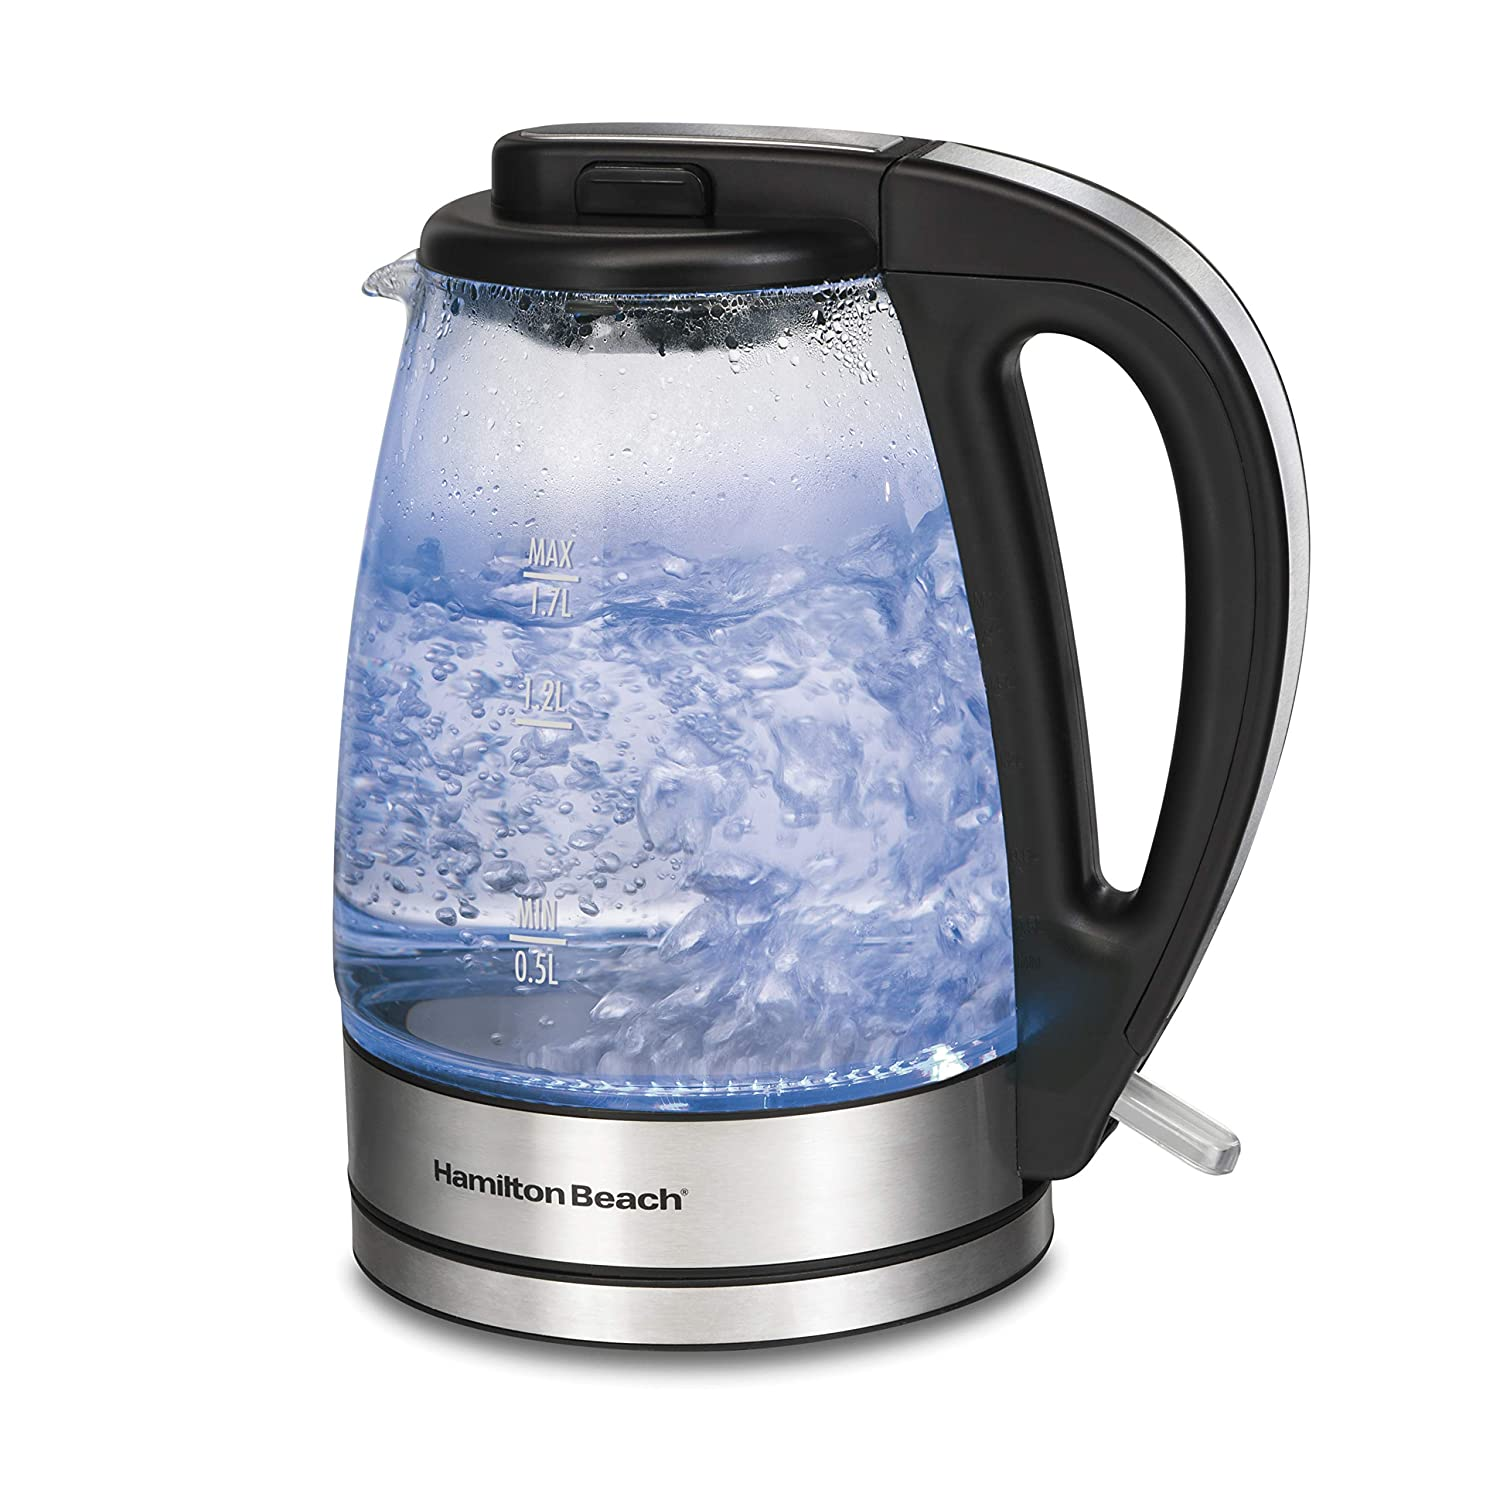 Hamilton Beach 1.7 Liter Electric Glass Kettle for Tea and Hot Water, Cordless, LED Indicator, Built-In Mesh Filter, Auto-Shutoff and Boil-Dry Protection 40864